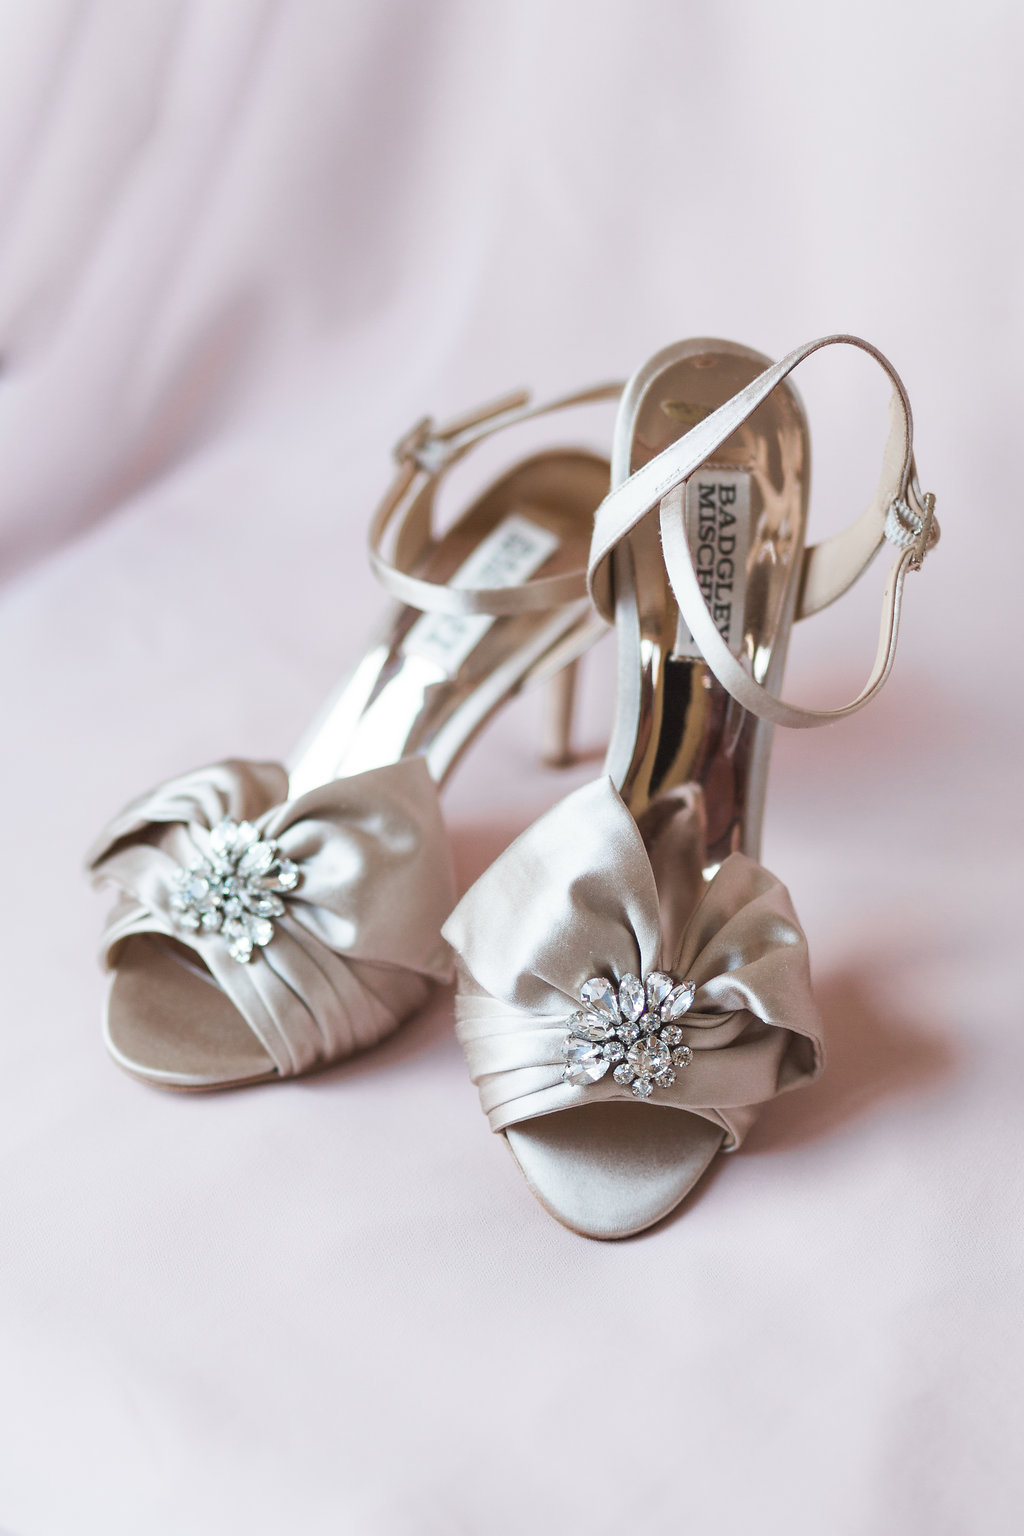 Badgely Mischka wedding shoe